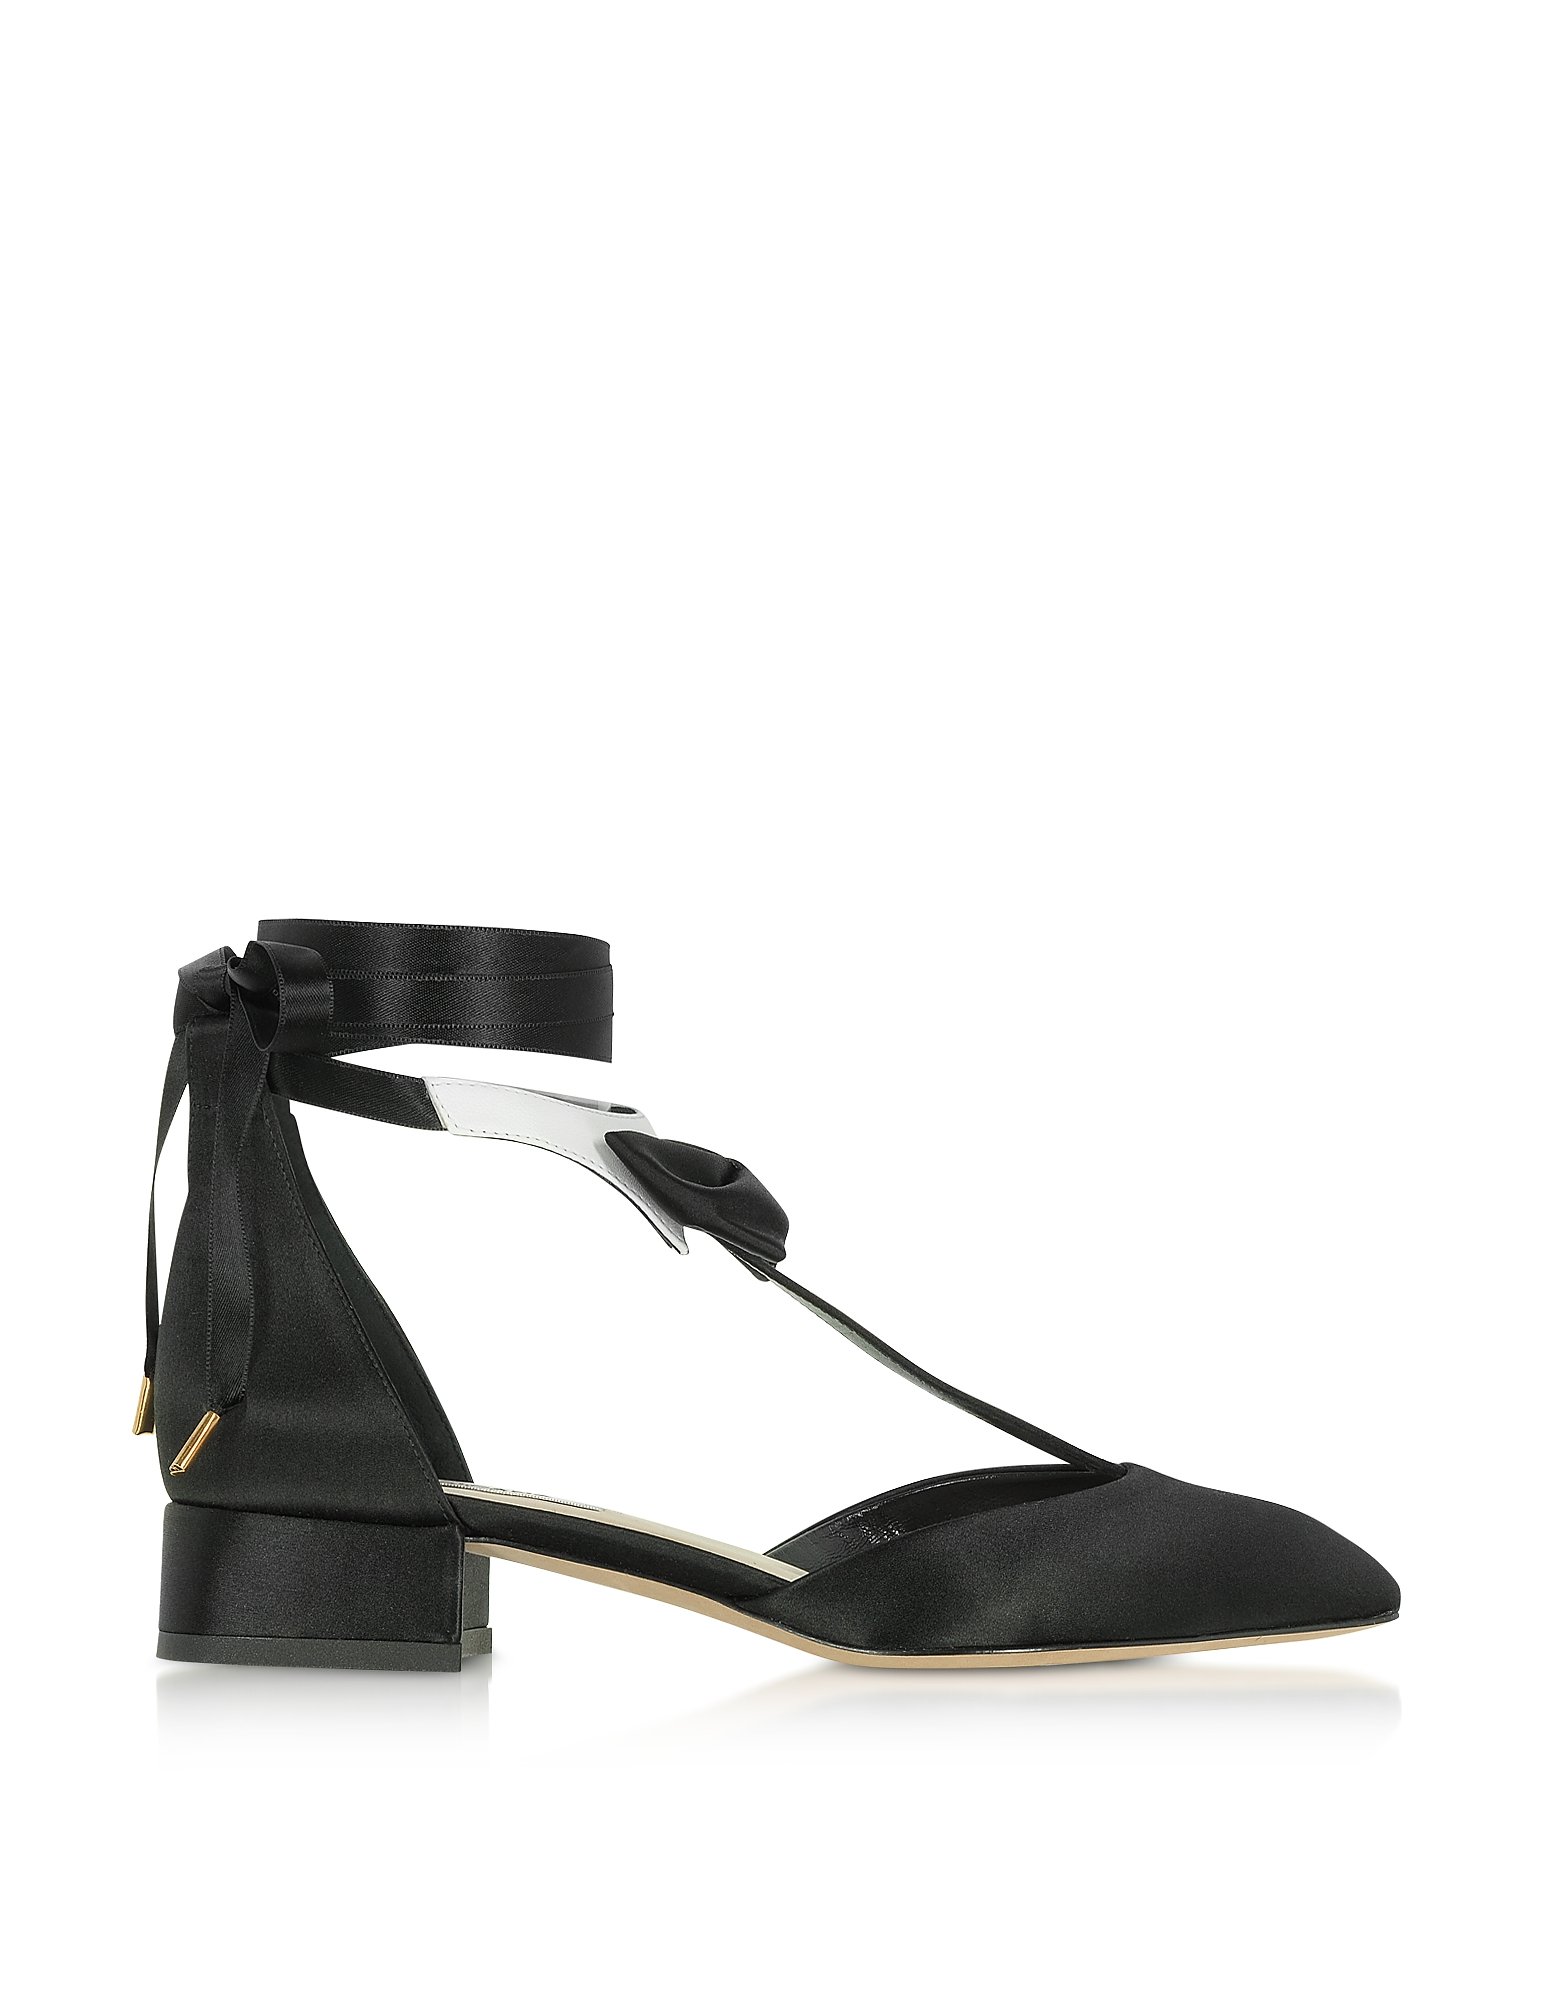 Olgana Paris Shoes, La Garconne Black and White Satin Mid-Heel Pump